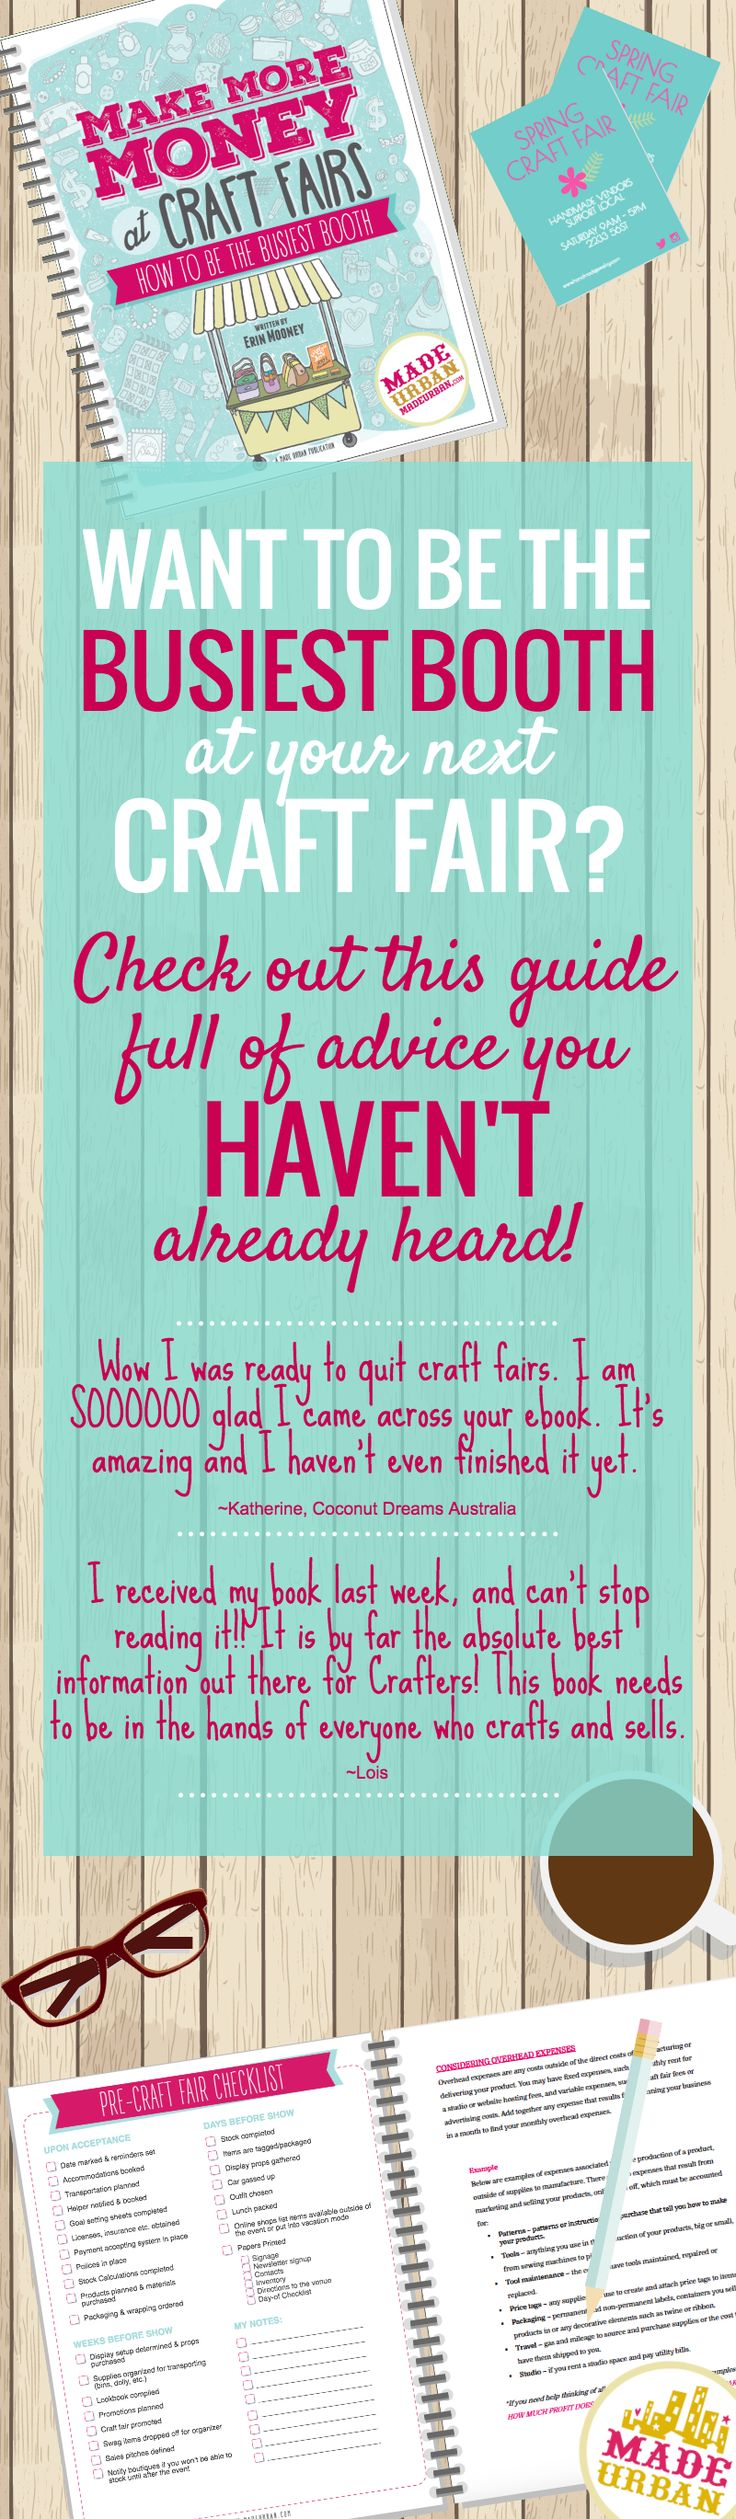 A start to finish guide for handmade sellers looking to make more money at craft fairs | MADE URBAN